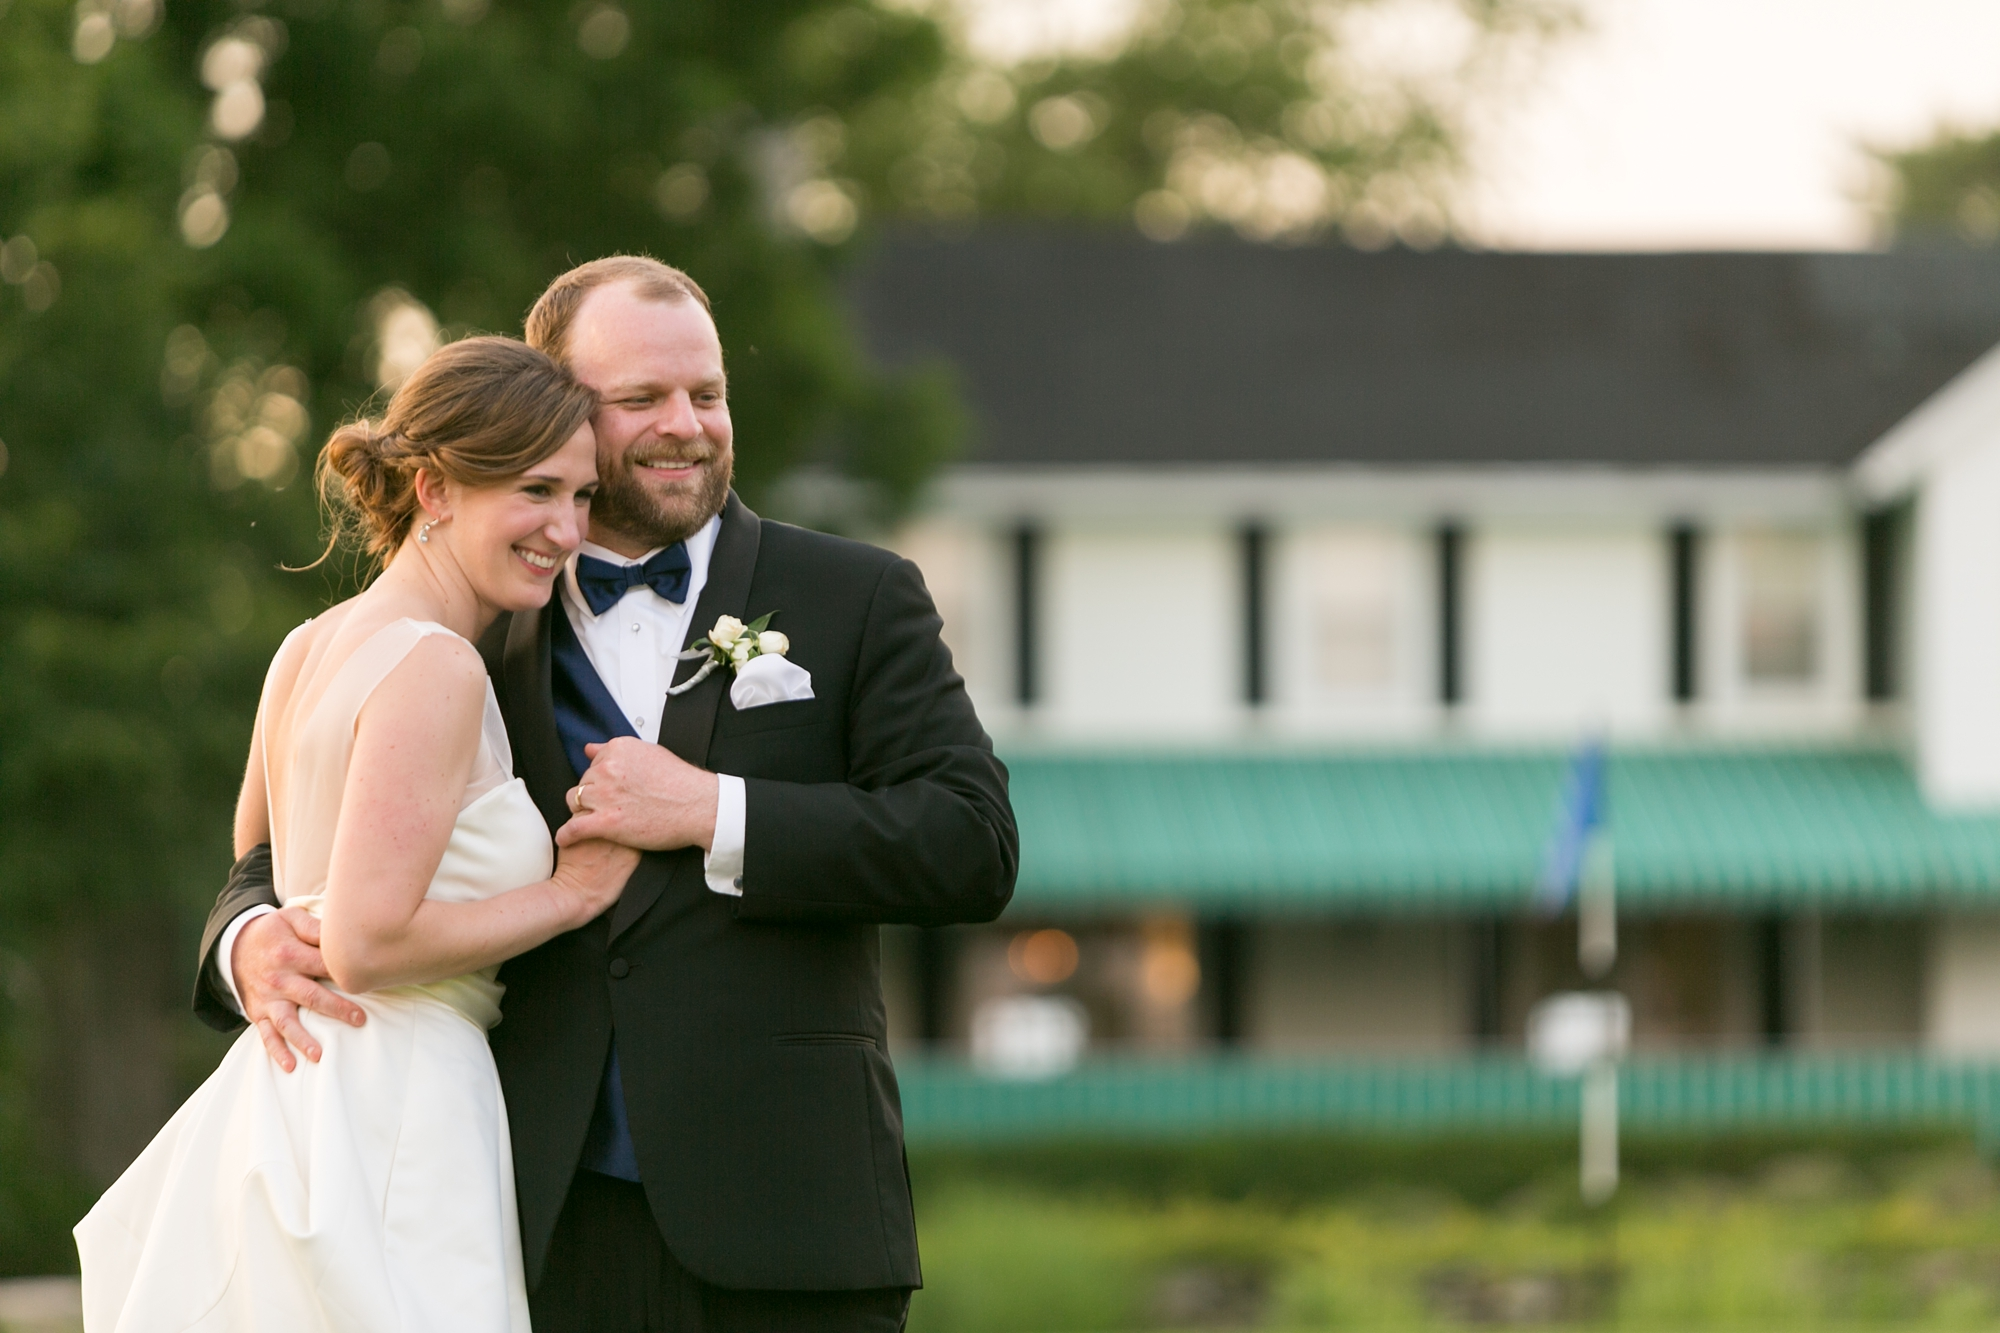 614Allegra_Anderson_CT_Wedding_Photographer_Stamford_Sterling_Farms_Golf_Club_2016